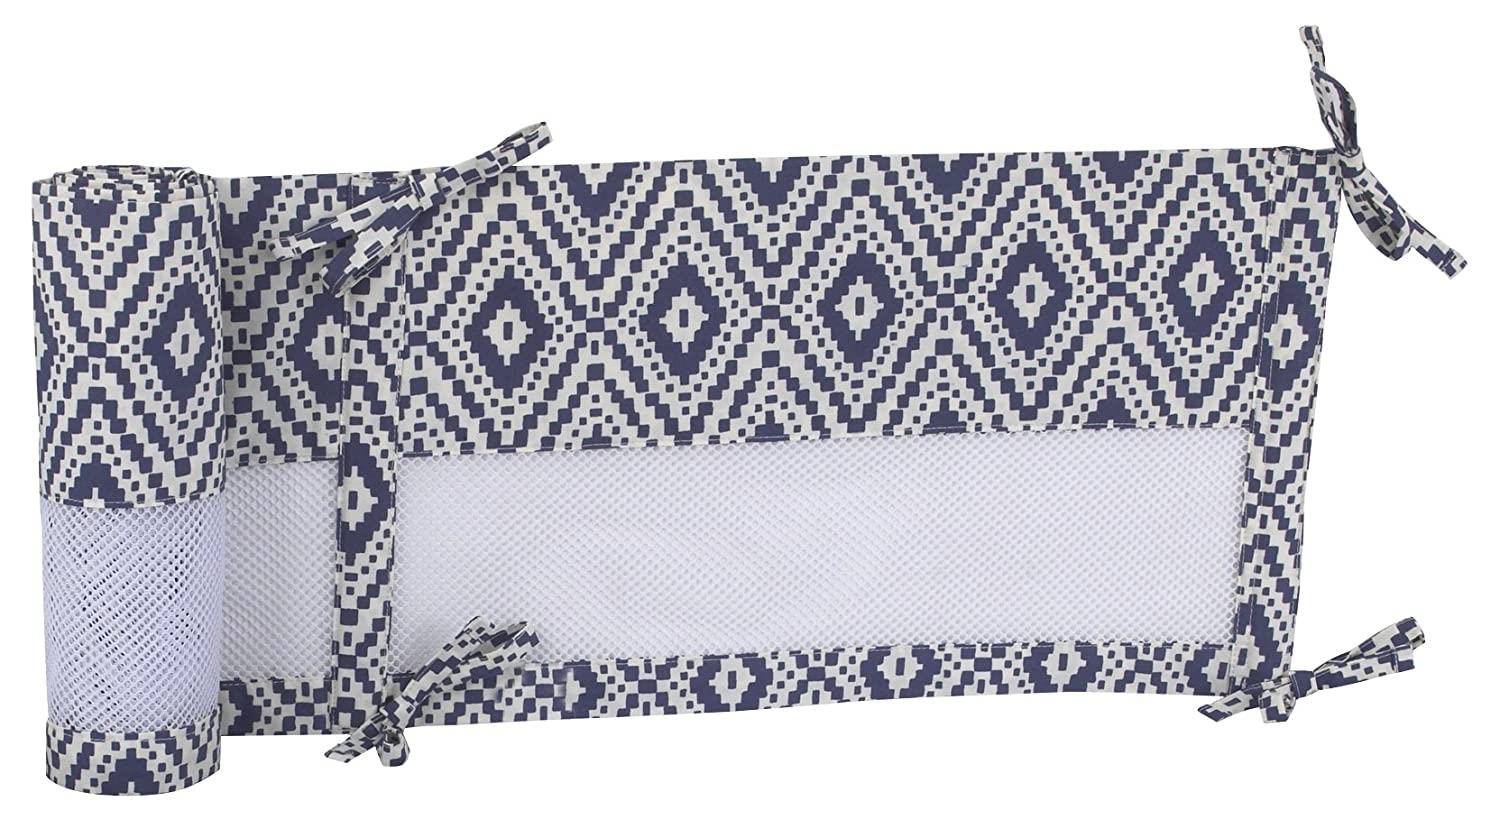 Carter's - Be Brave - Secure-Me Crib Liner/Navy/ Light Blue/White Crown Crafts Infant Products 3825780